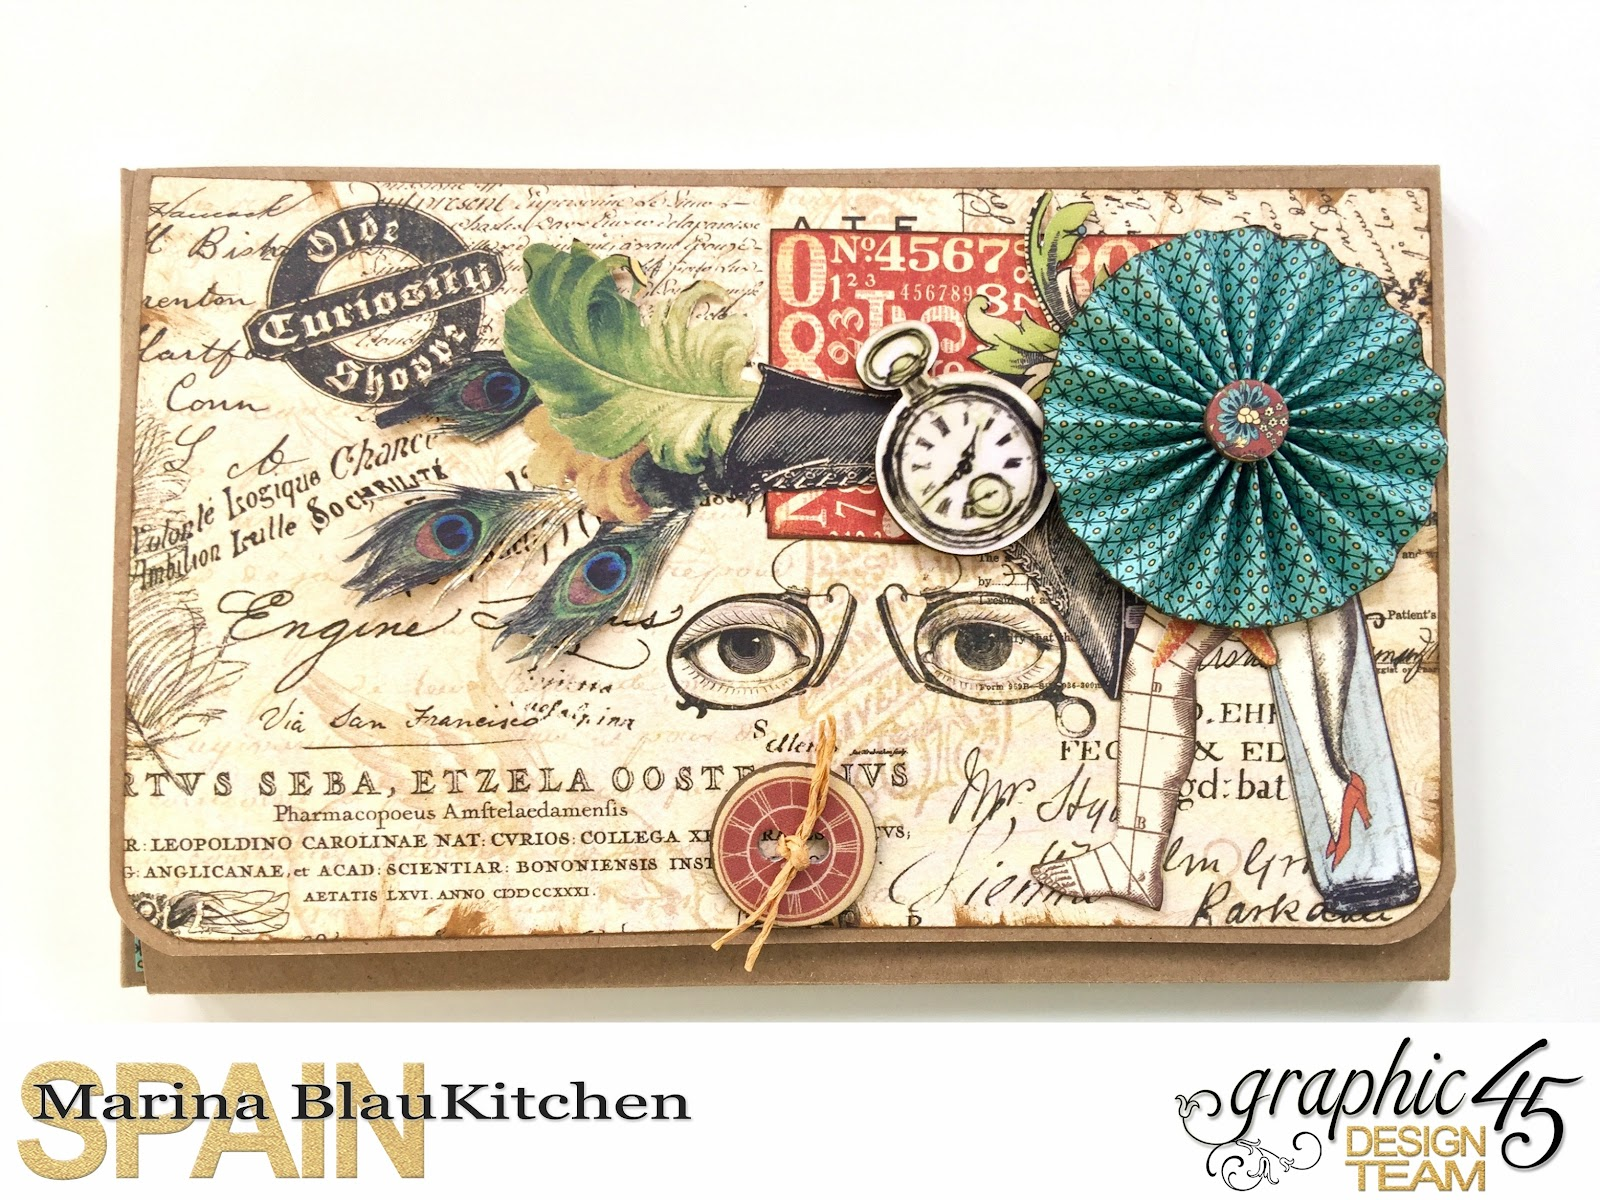 Olde Curiosity Shoppe Flip Fold Mini Album by Marina Blaukitchen Product by Graphic 45 photo 1.jpg